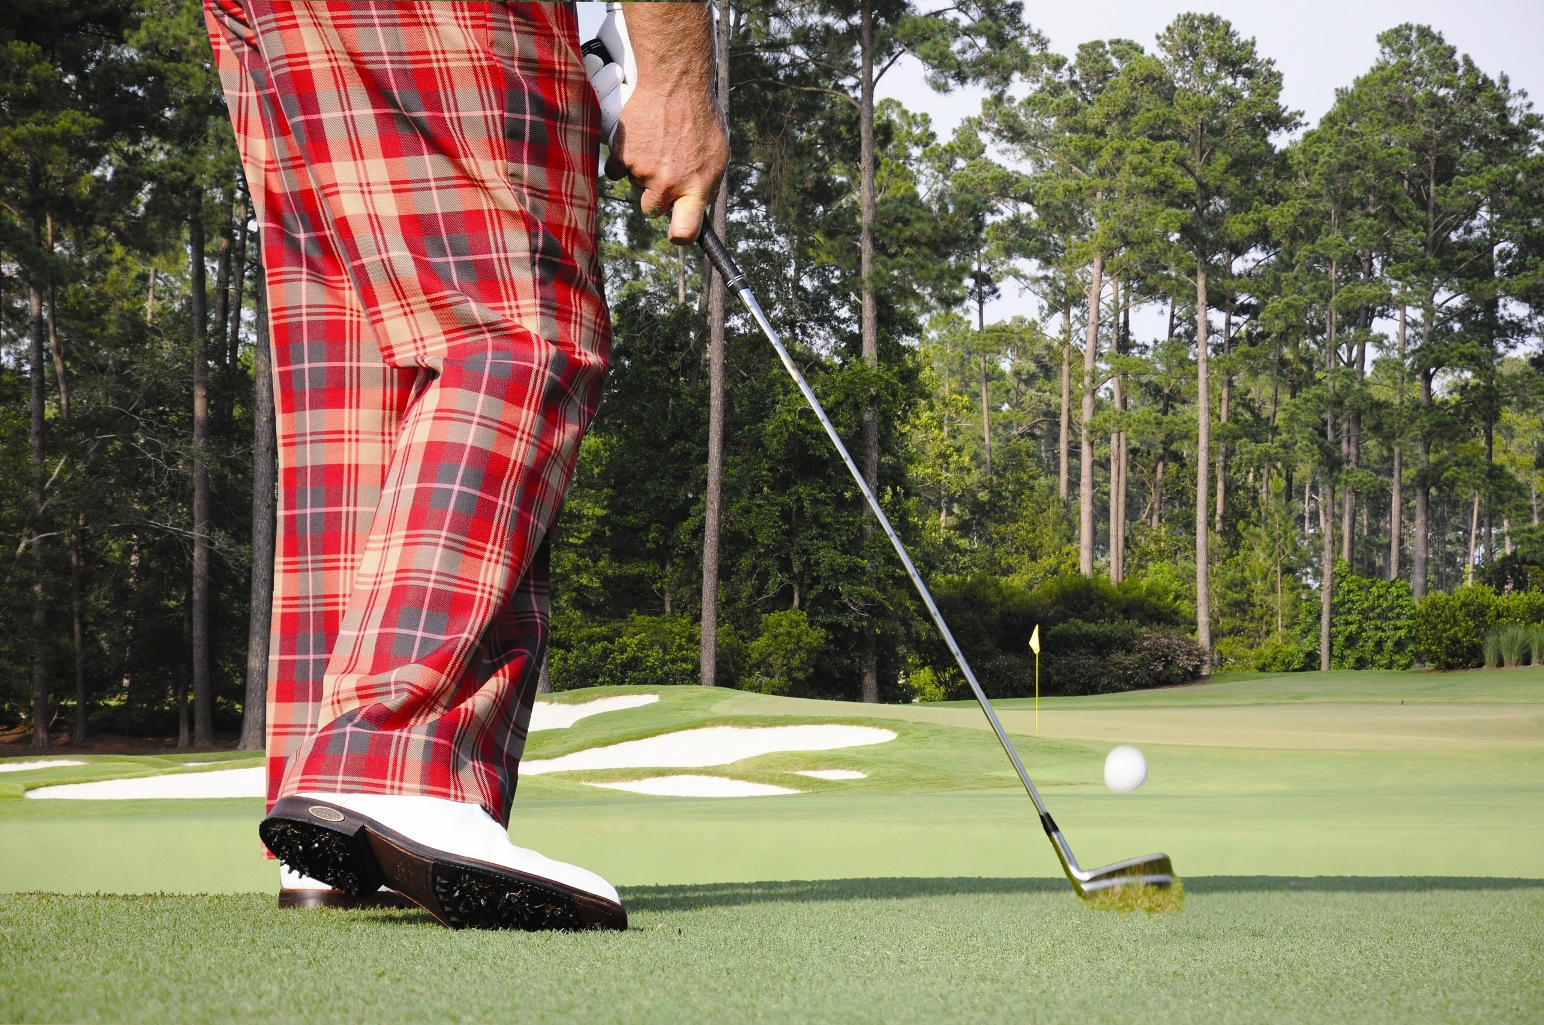 Correct Foot Action through Impact for a control type shot